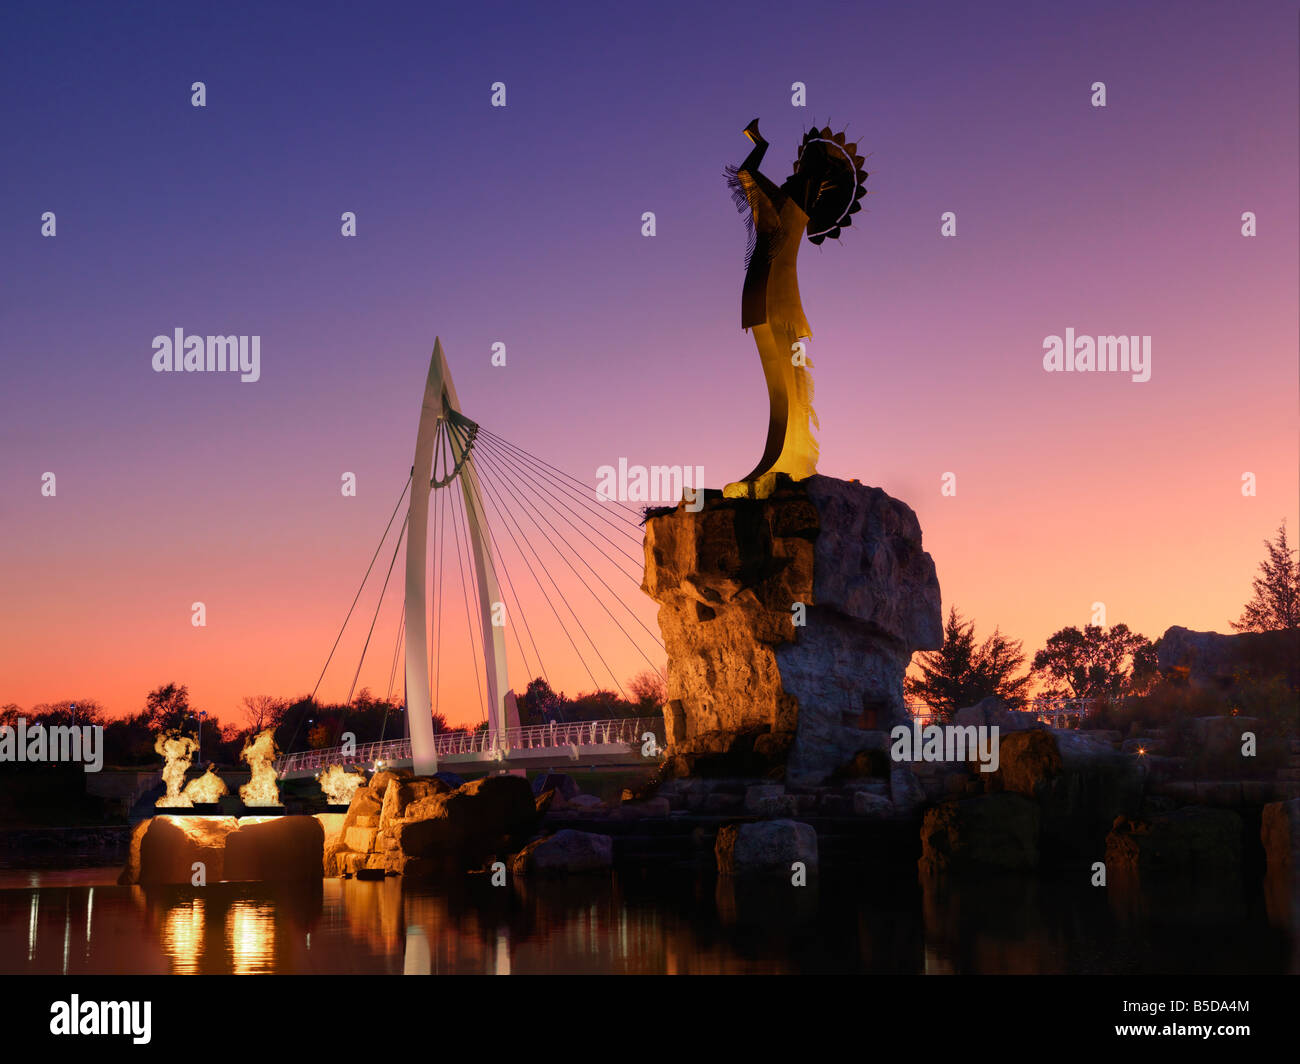 Keeper of the Plains statue, Wichita, Kansas, USA. - Stock Image